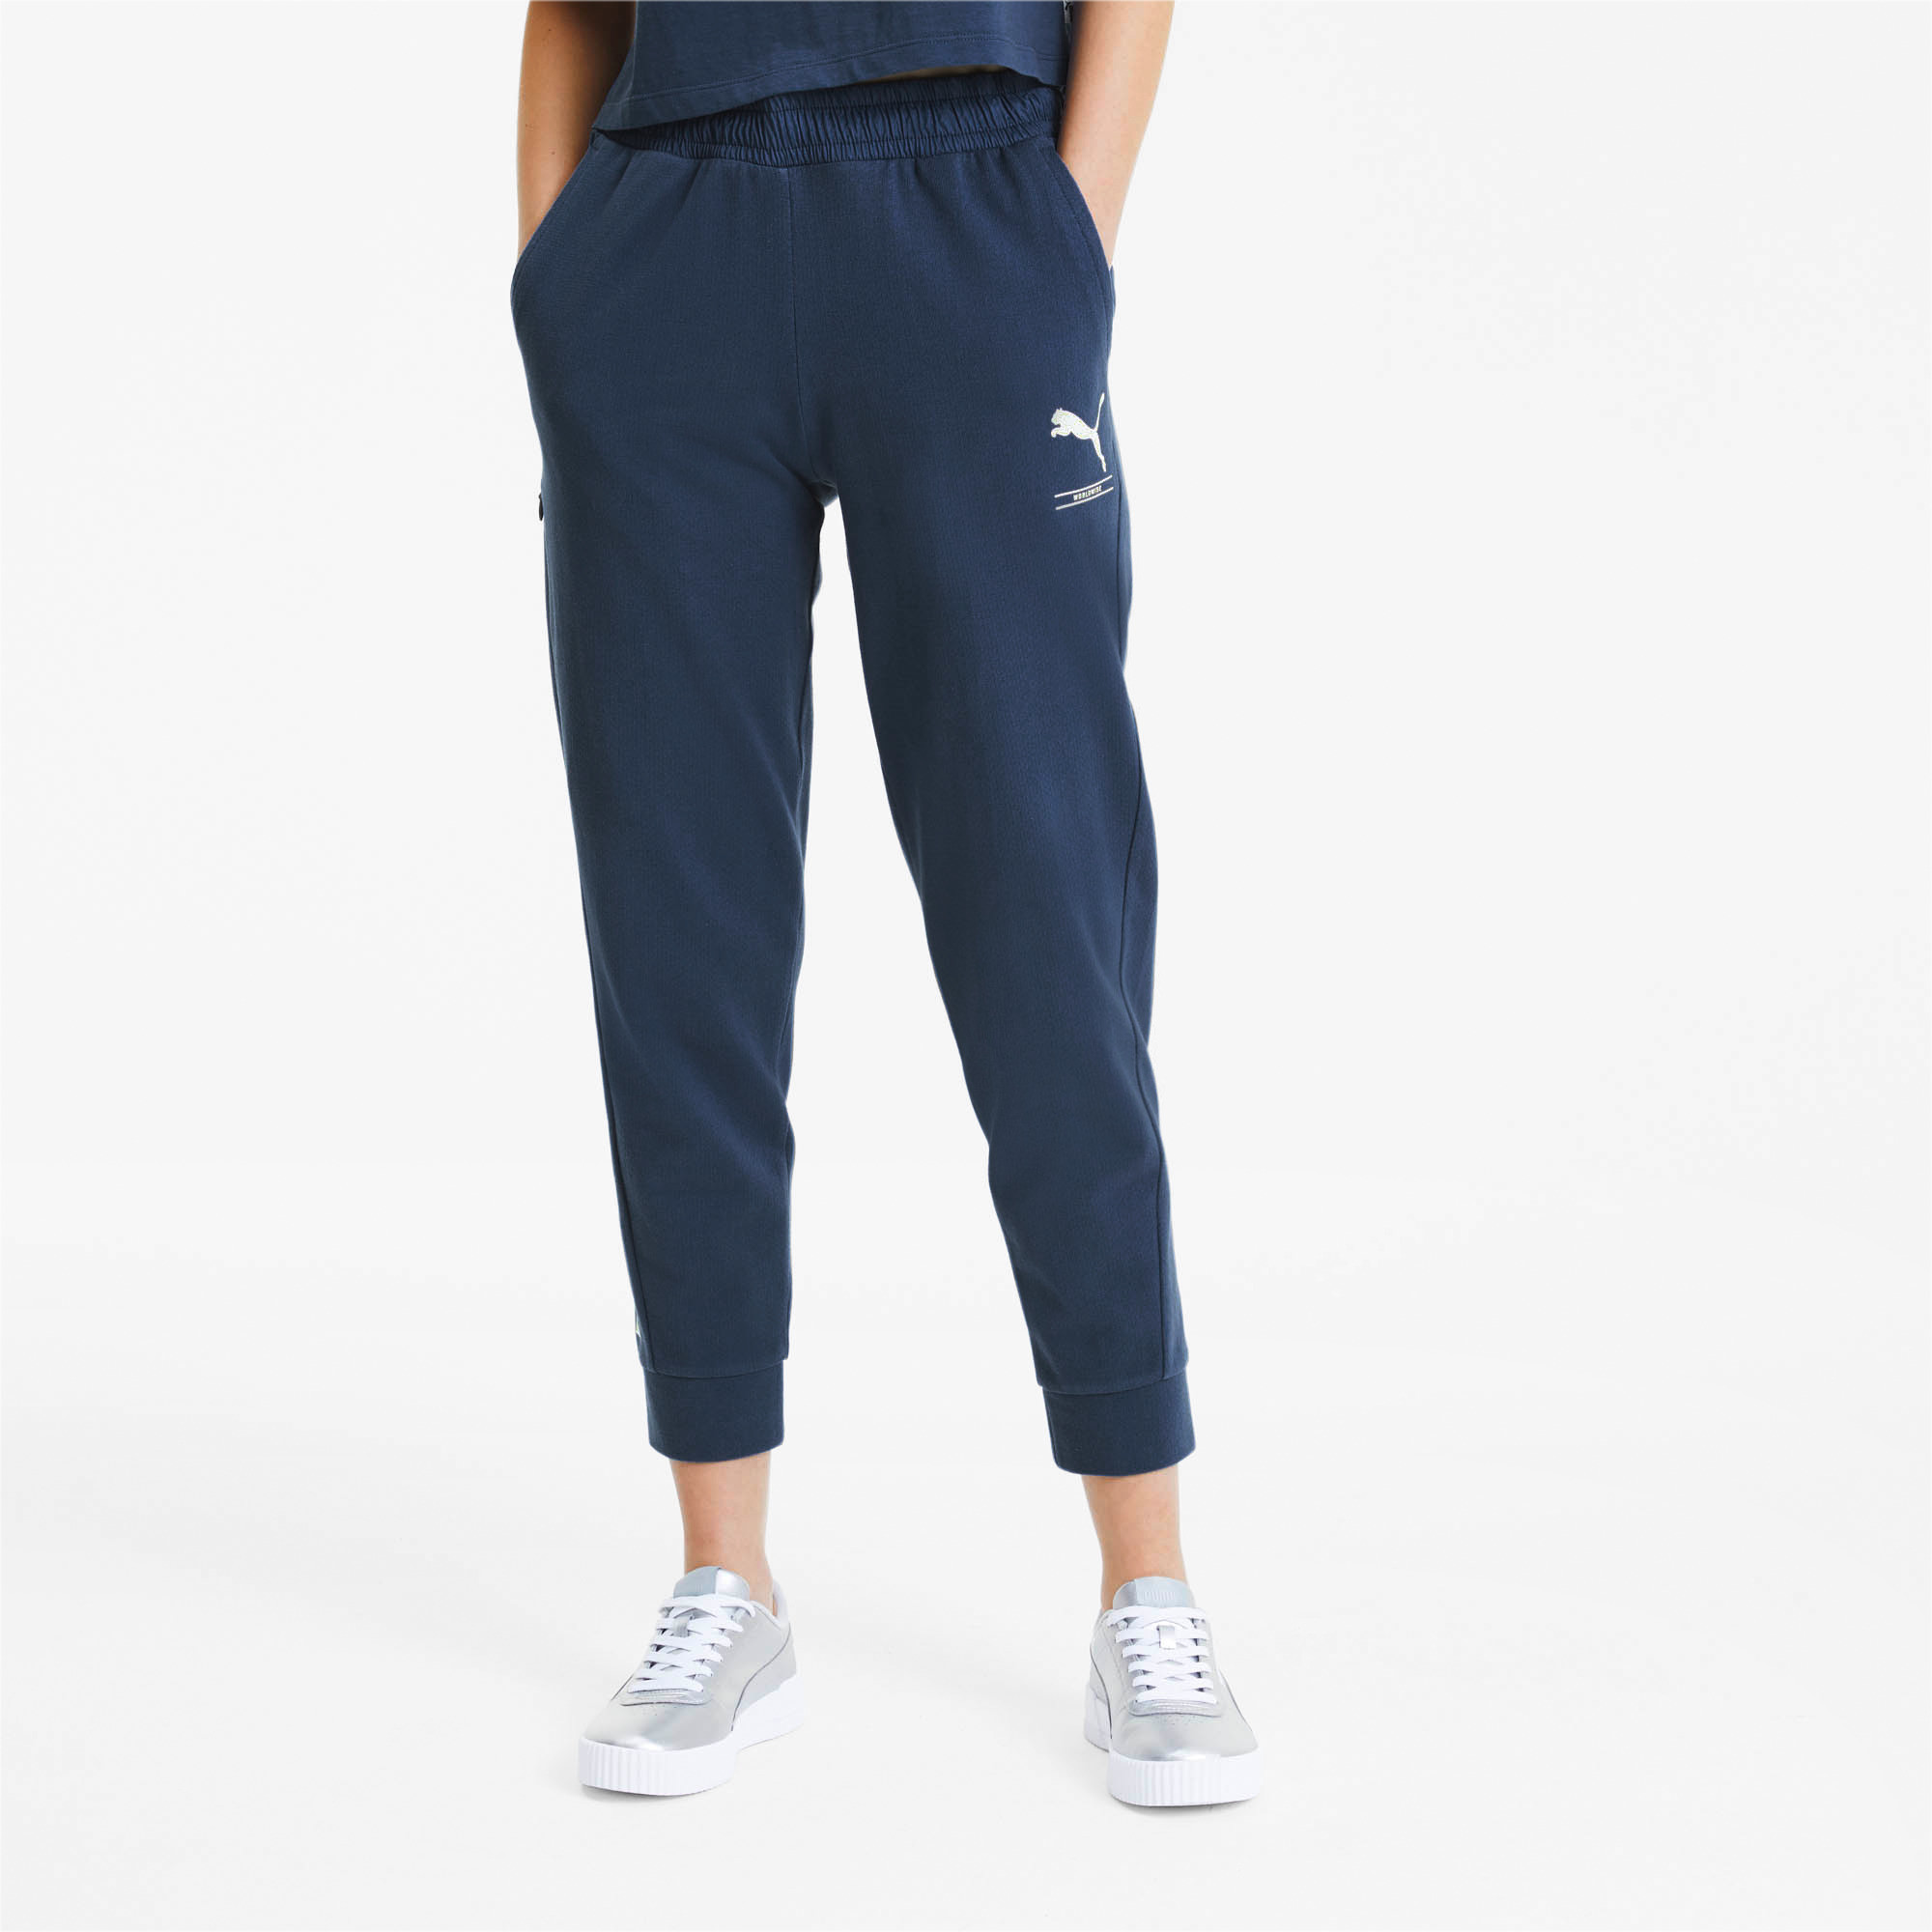 PUMA-Women-039-s-NU-TILITY-Sweatpants thumbnail 18